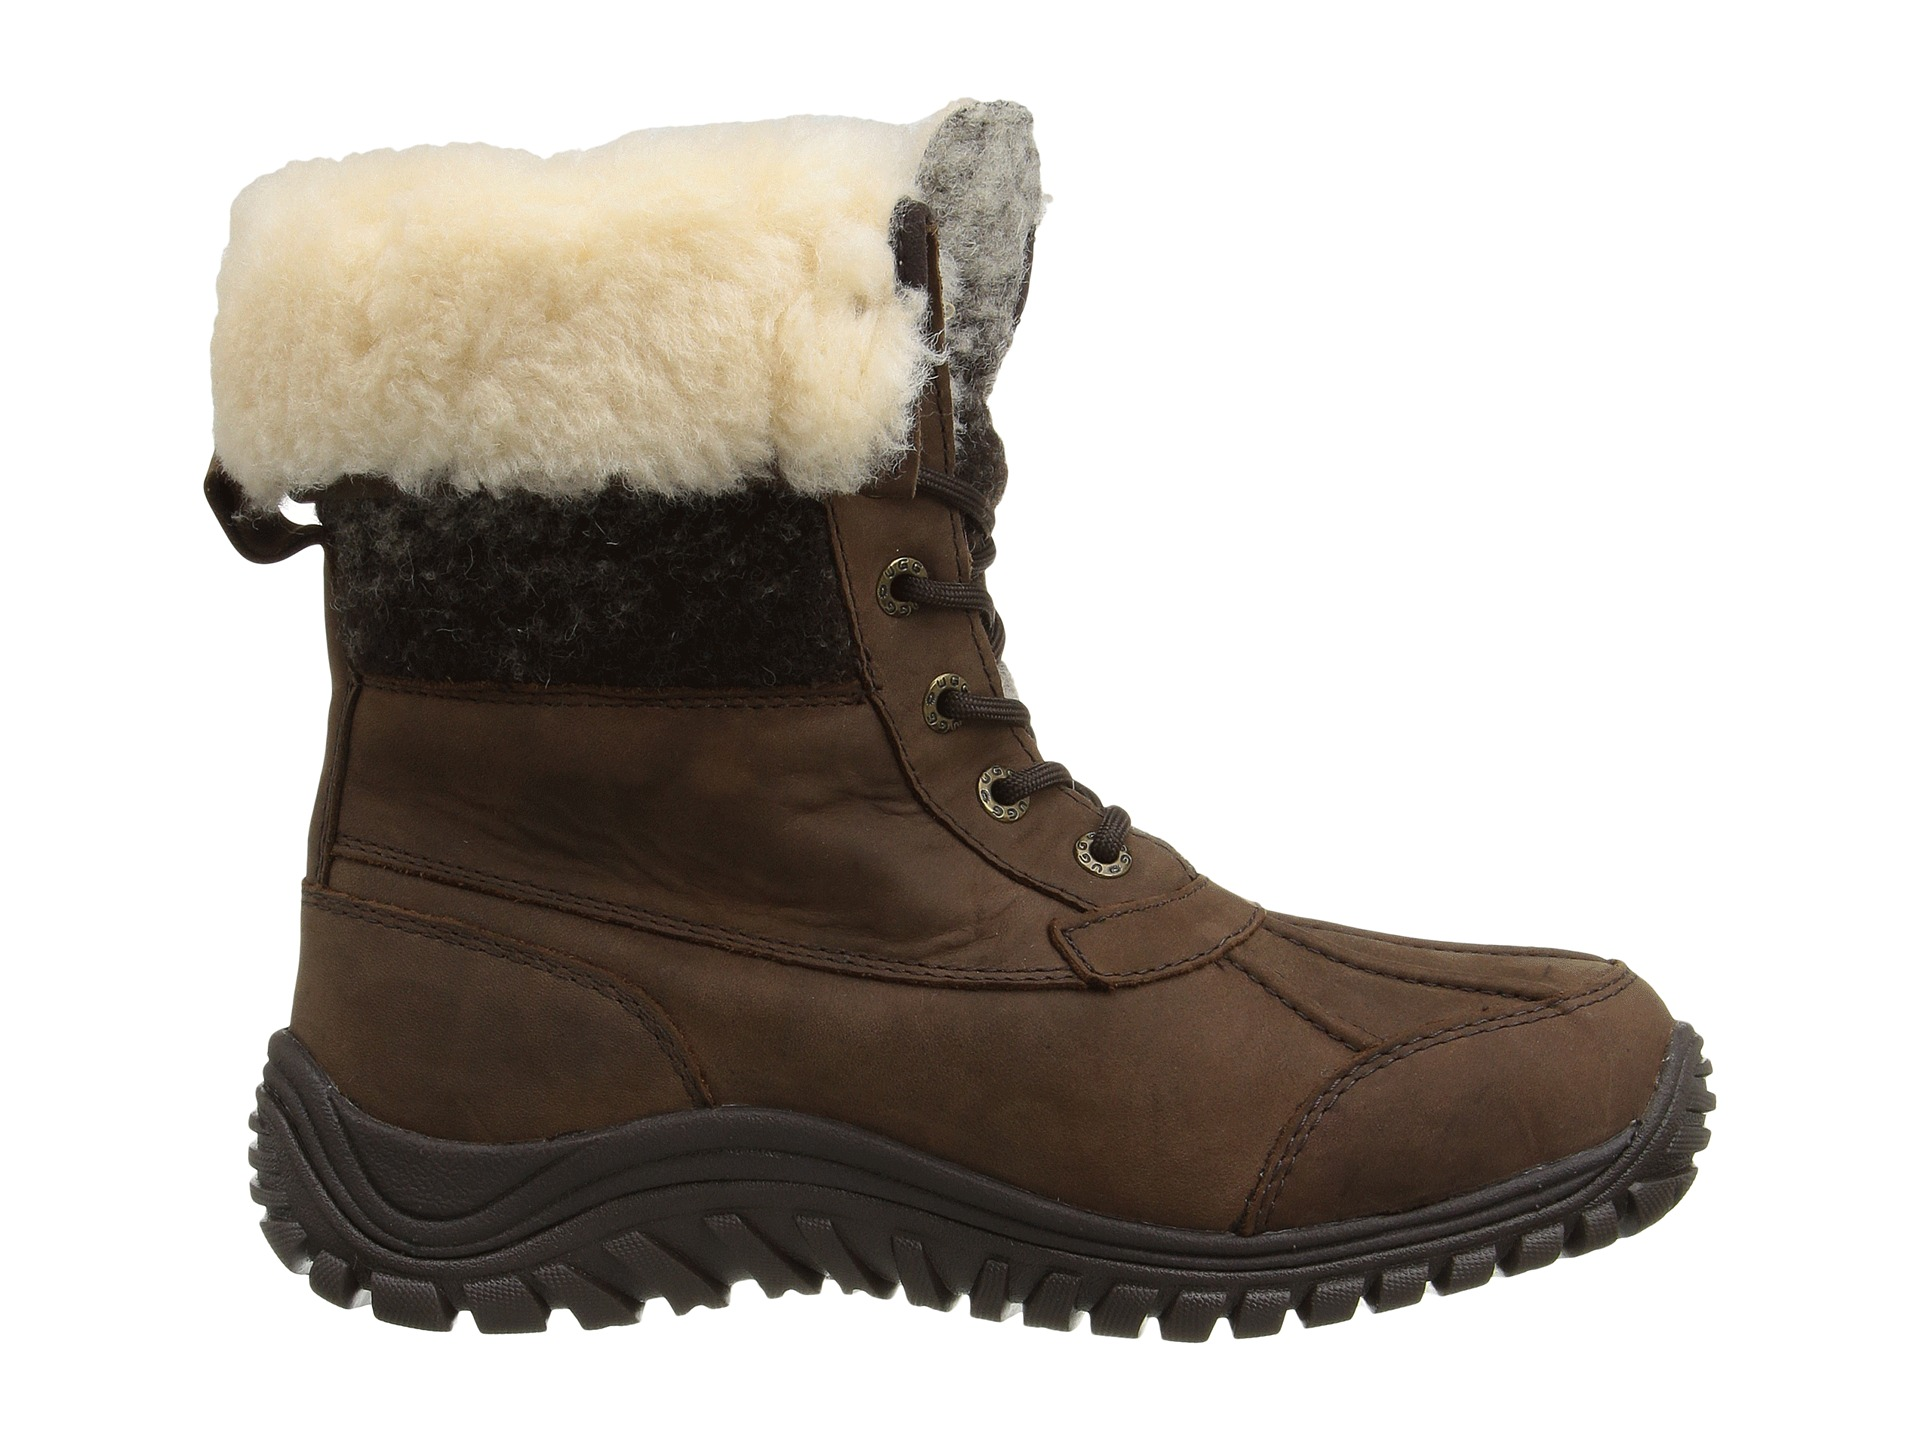 505f7534412 Ugg Adirondack Boot For Sale - cheap watches mgc-gas.com